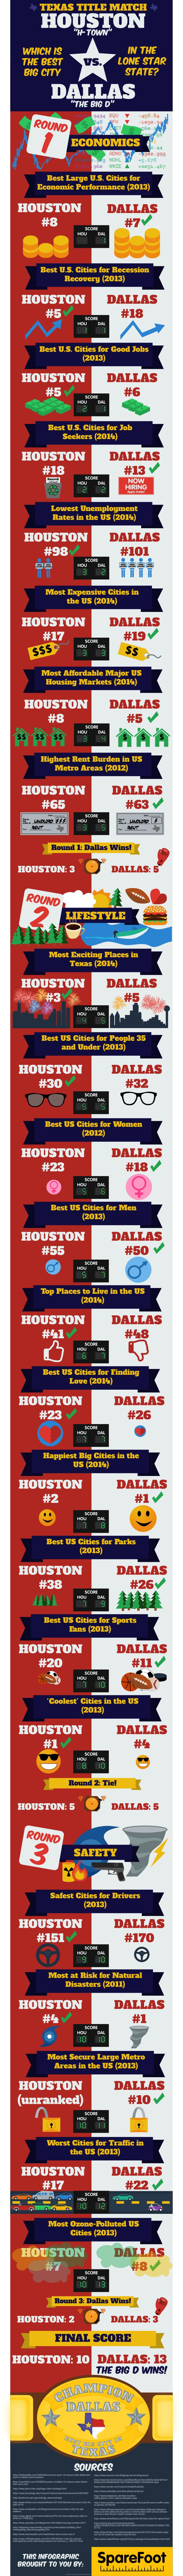 Dallas vs. Houston: Which Big City Is the Star of Texas? #infographic